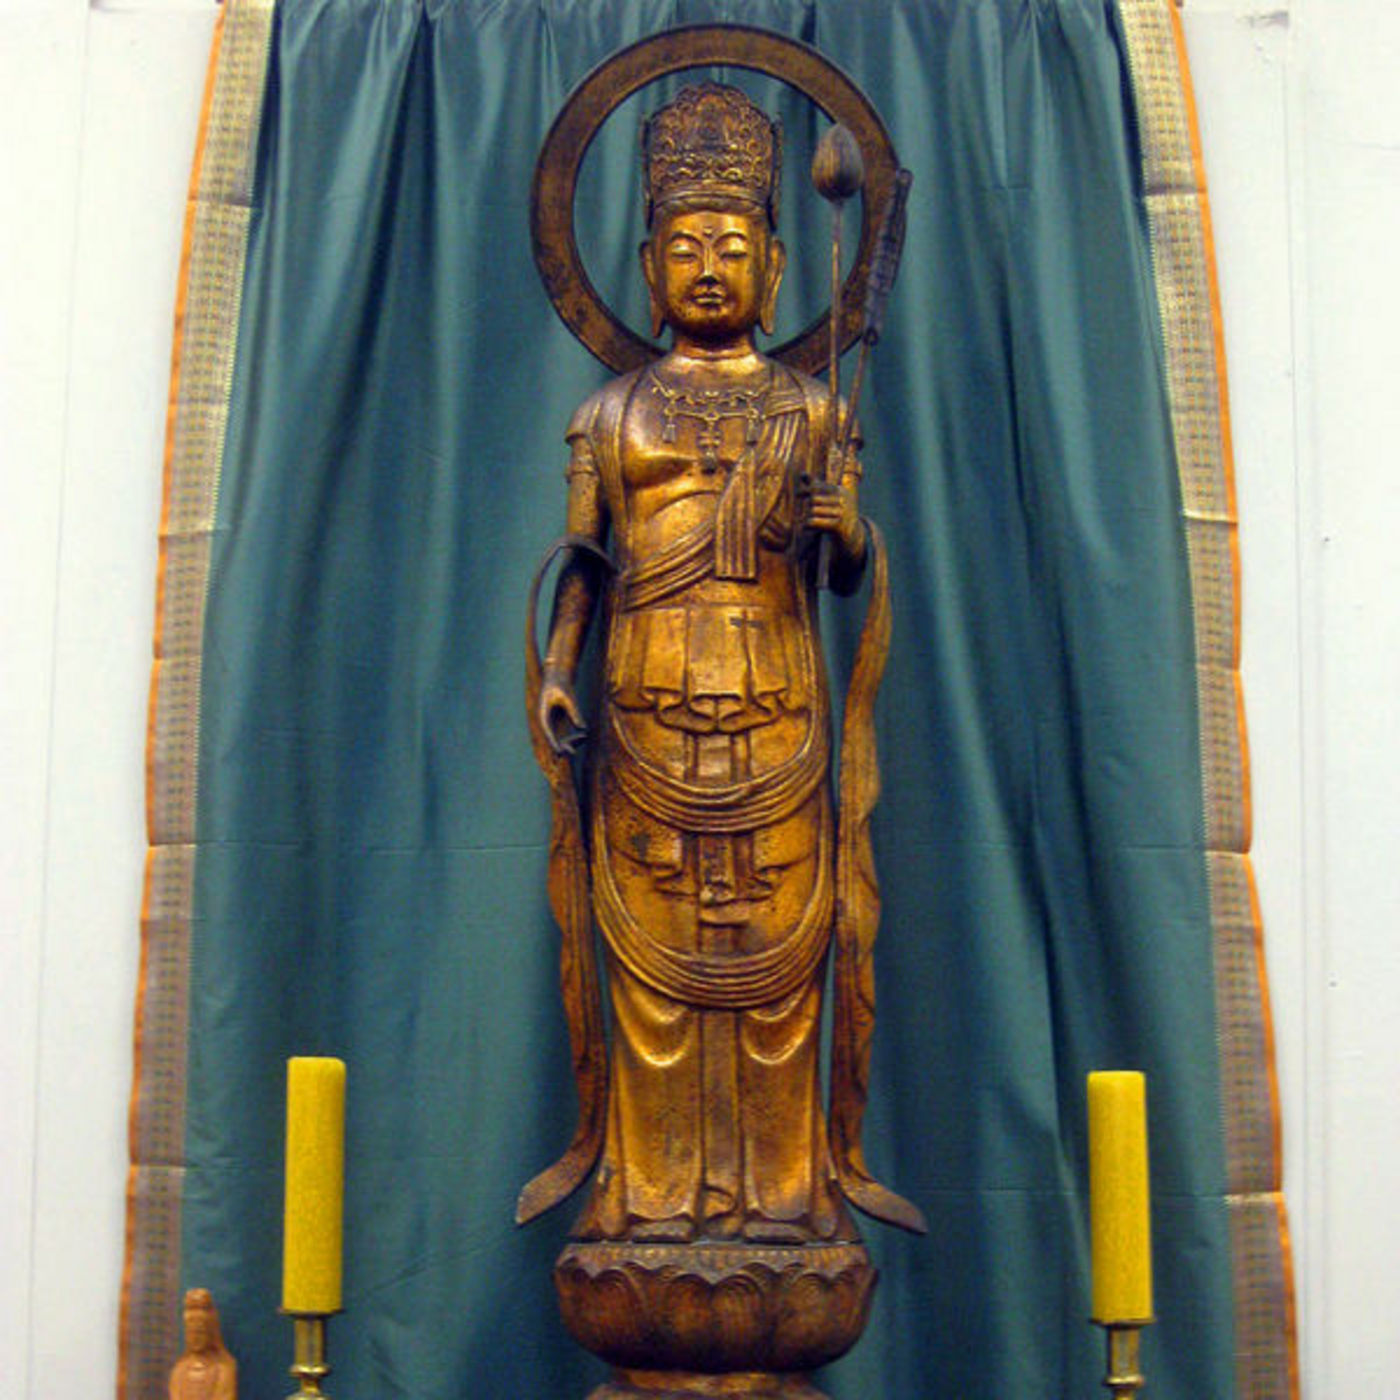 <![CDATA[Talks on the Precepts and Buddhist Ethics]]>